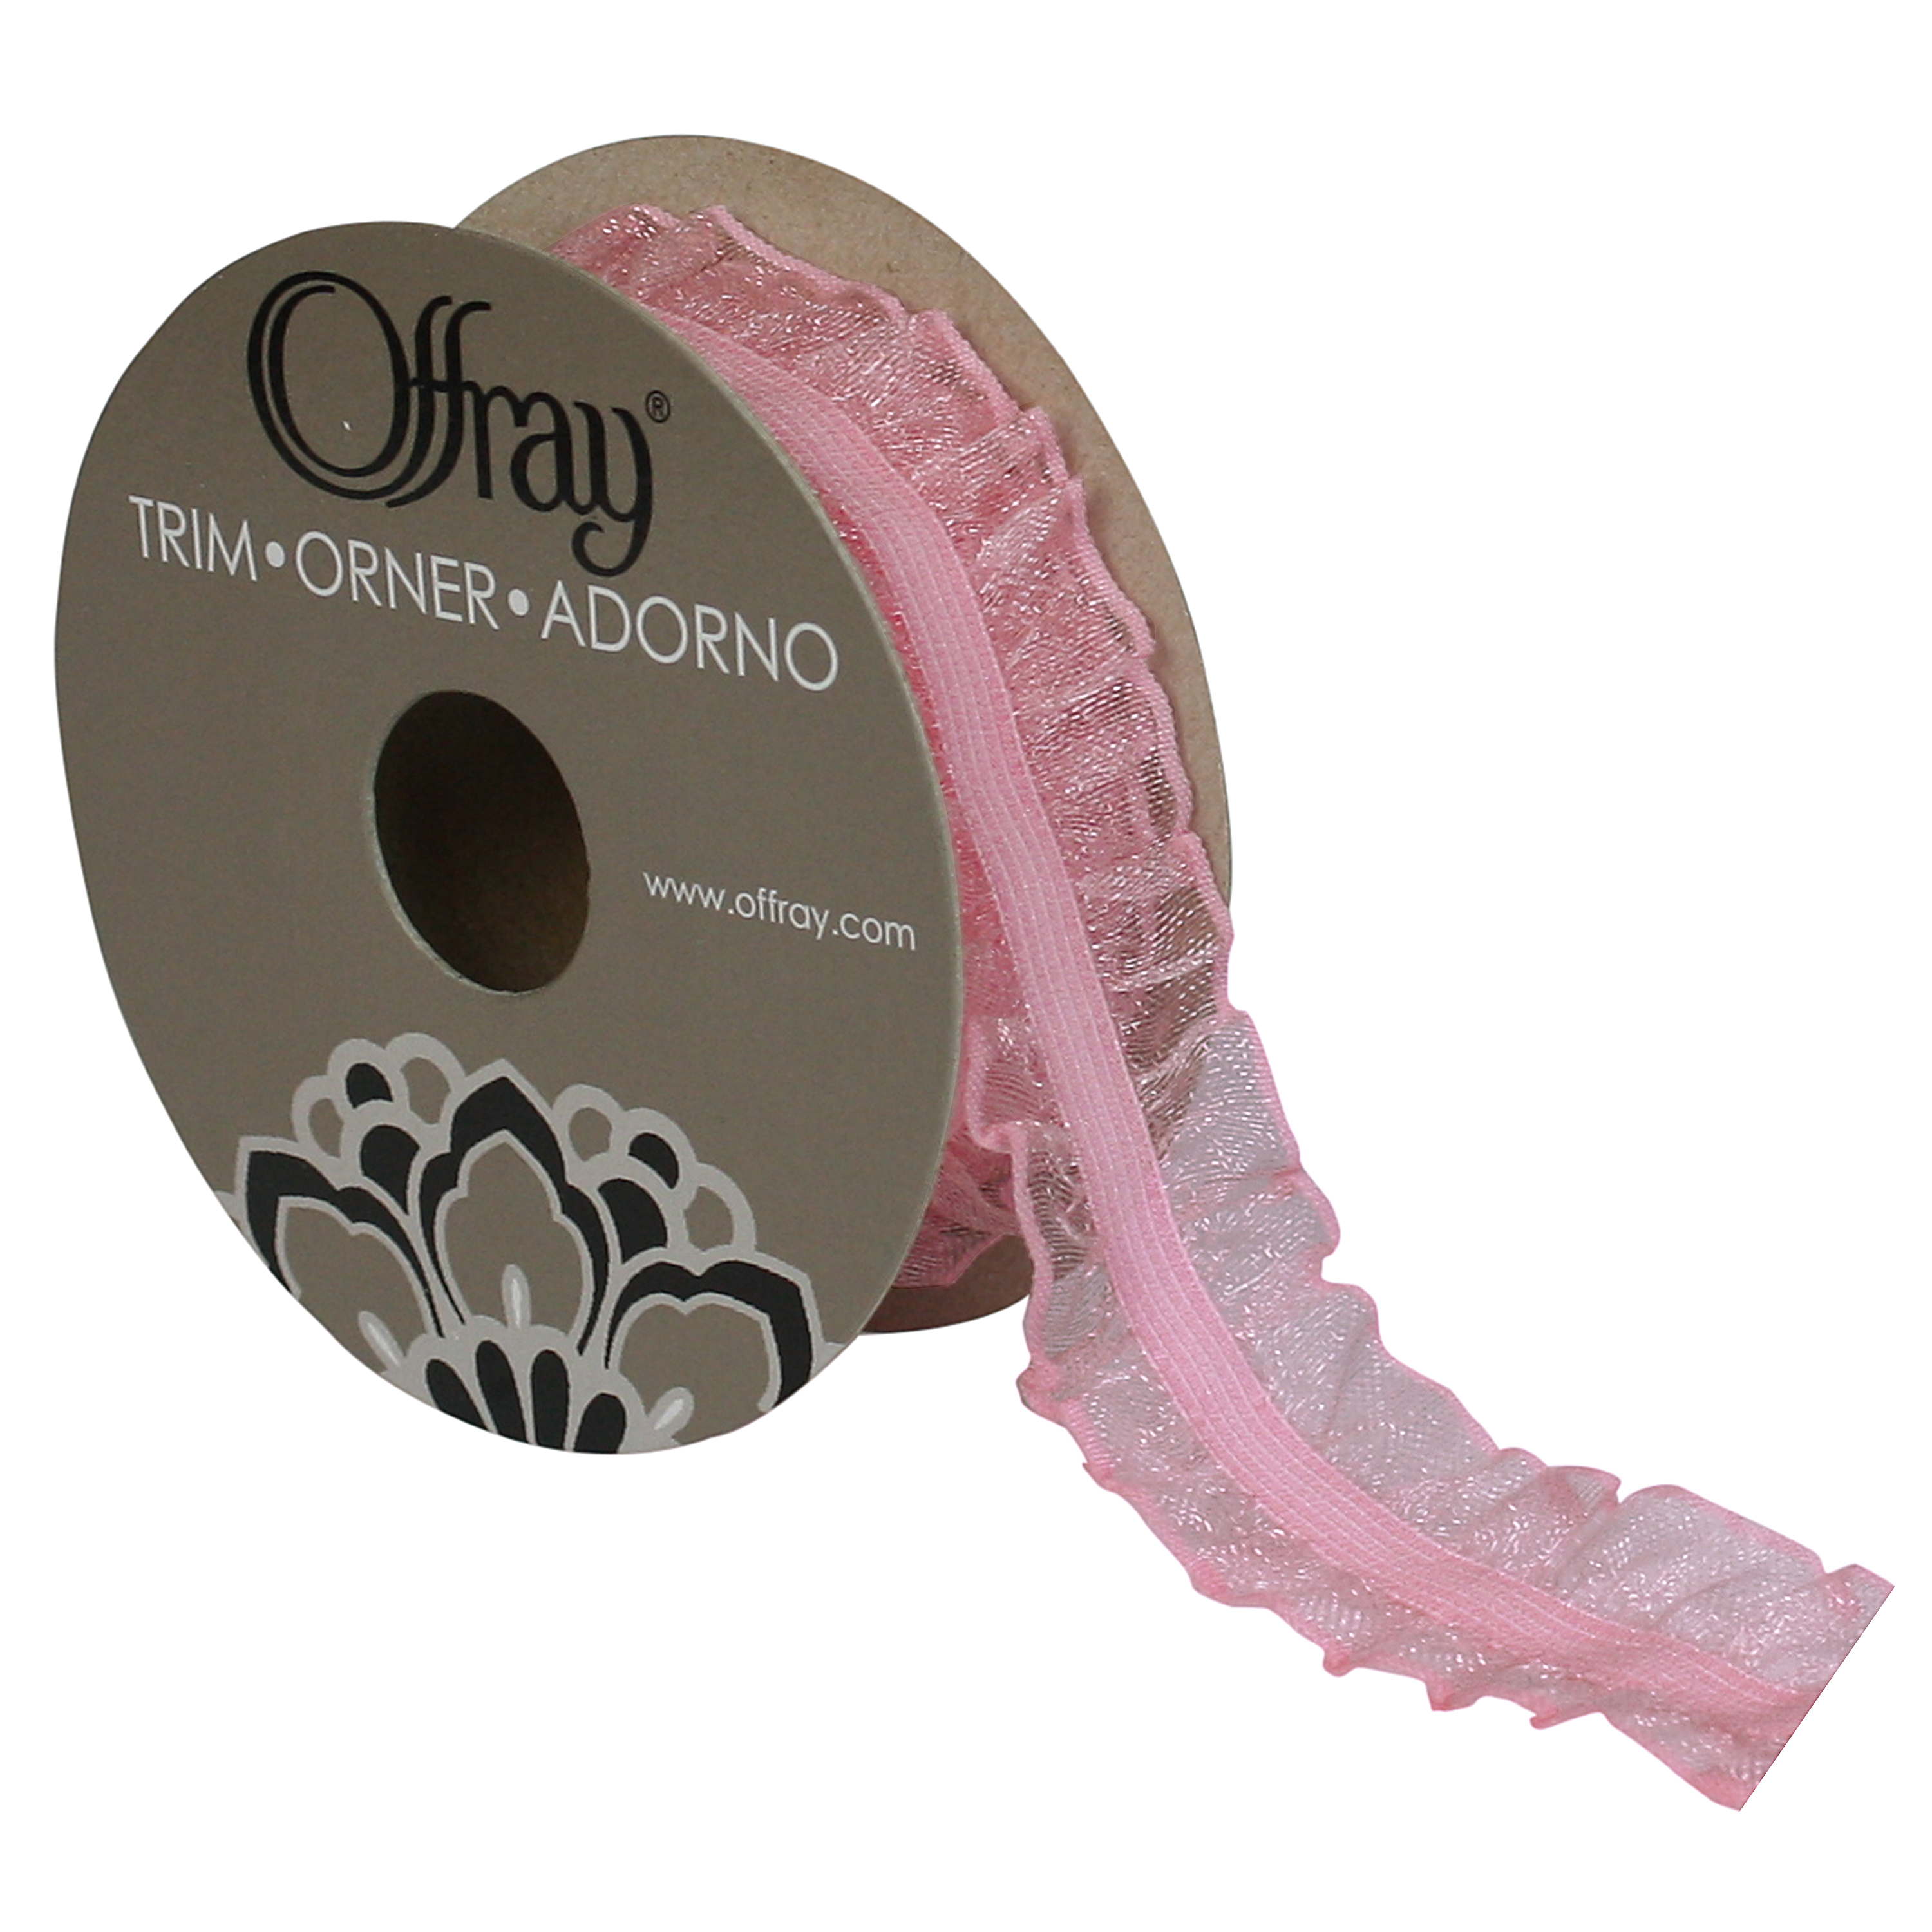 OFFRAY TRIM LIGHT PINK RUFFLE EDGE  1 INCHES X 3 YARDS